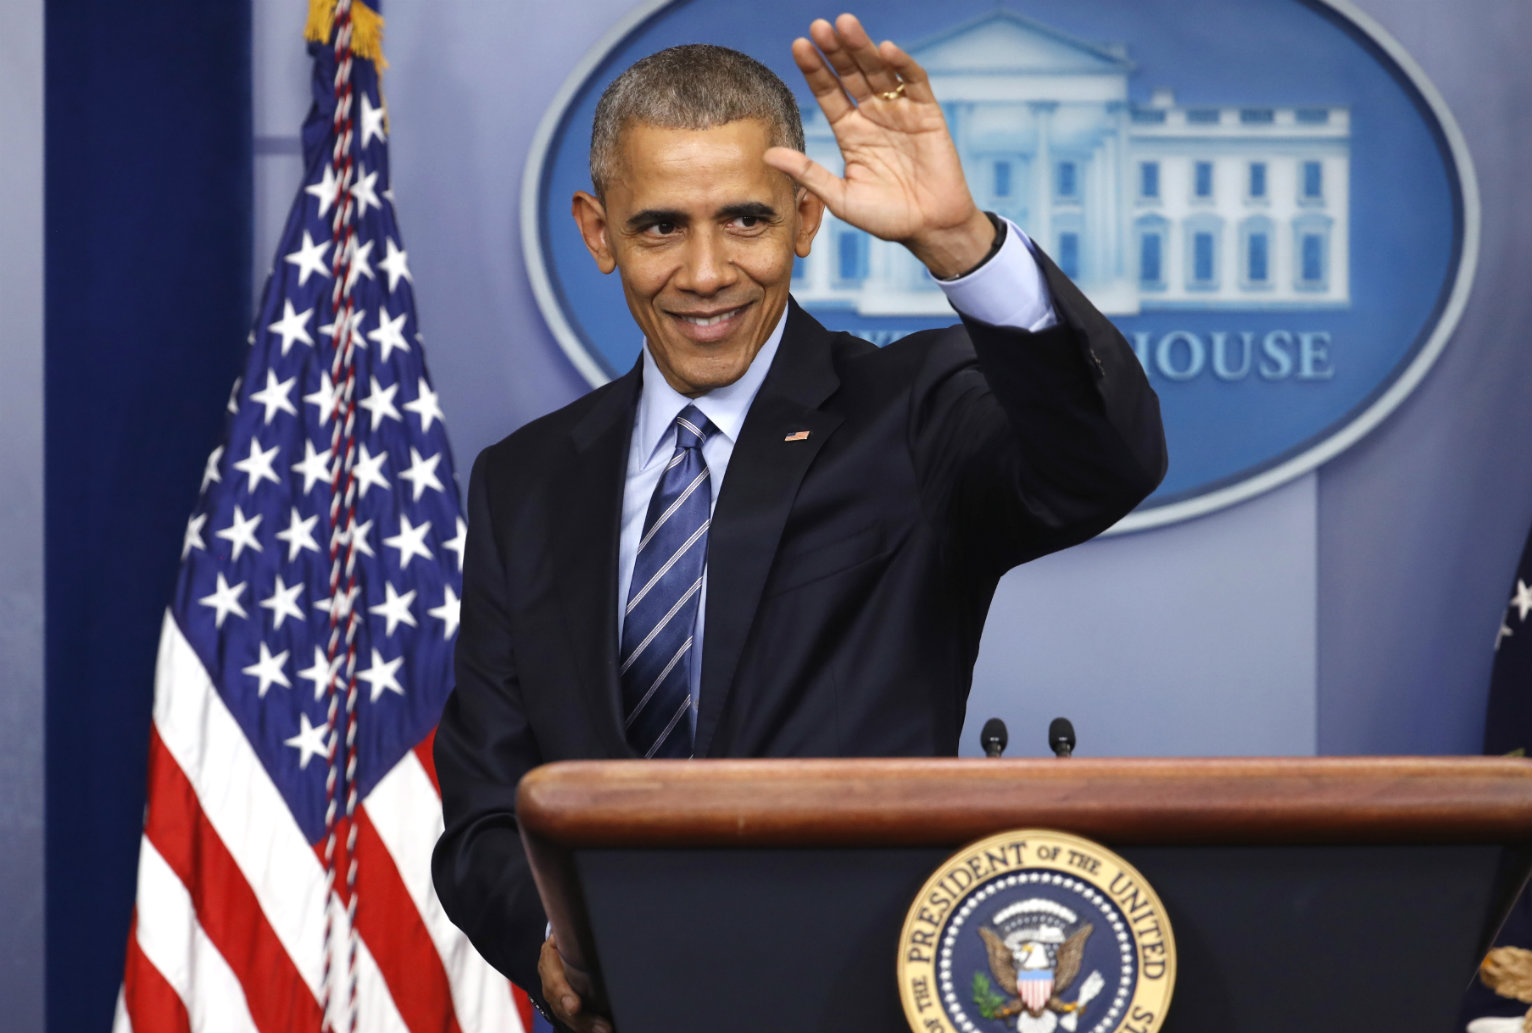 10 Things You Didn't Know About Barack Obama | National News | US News